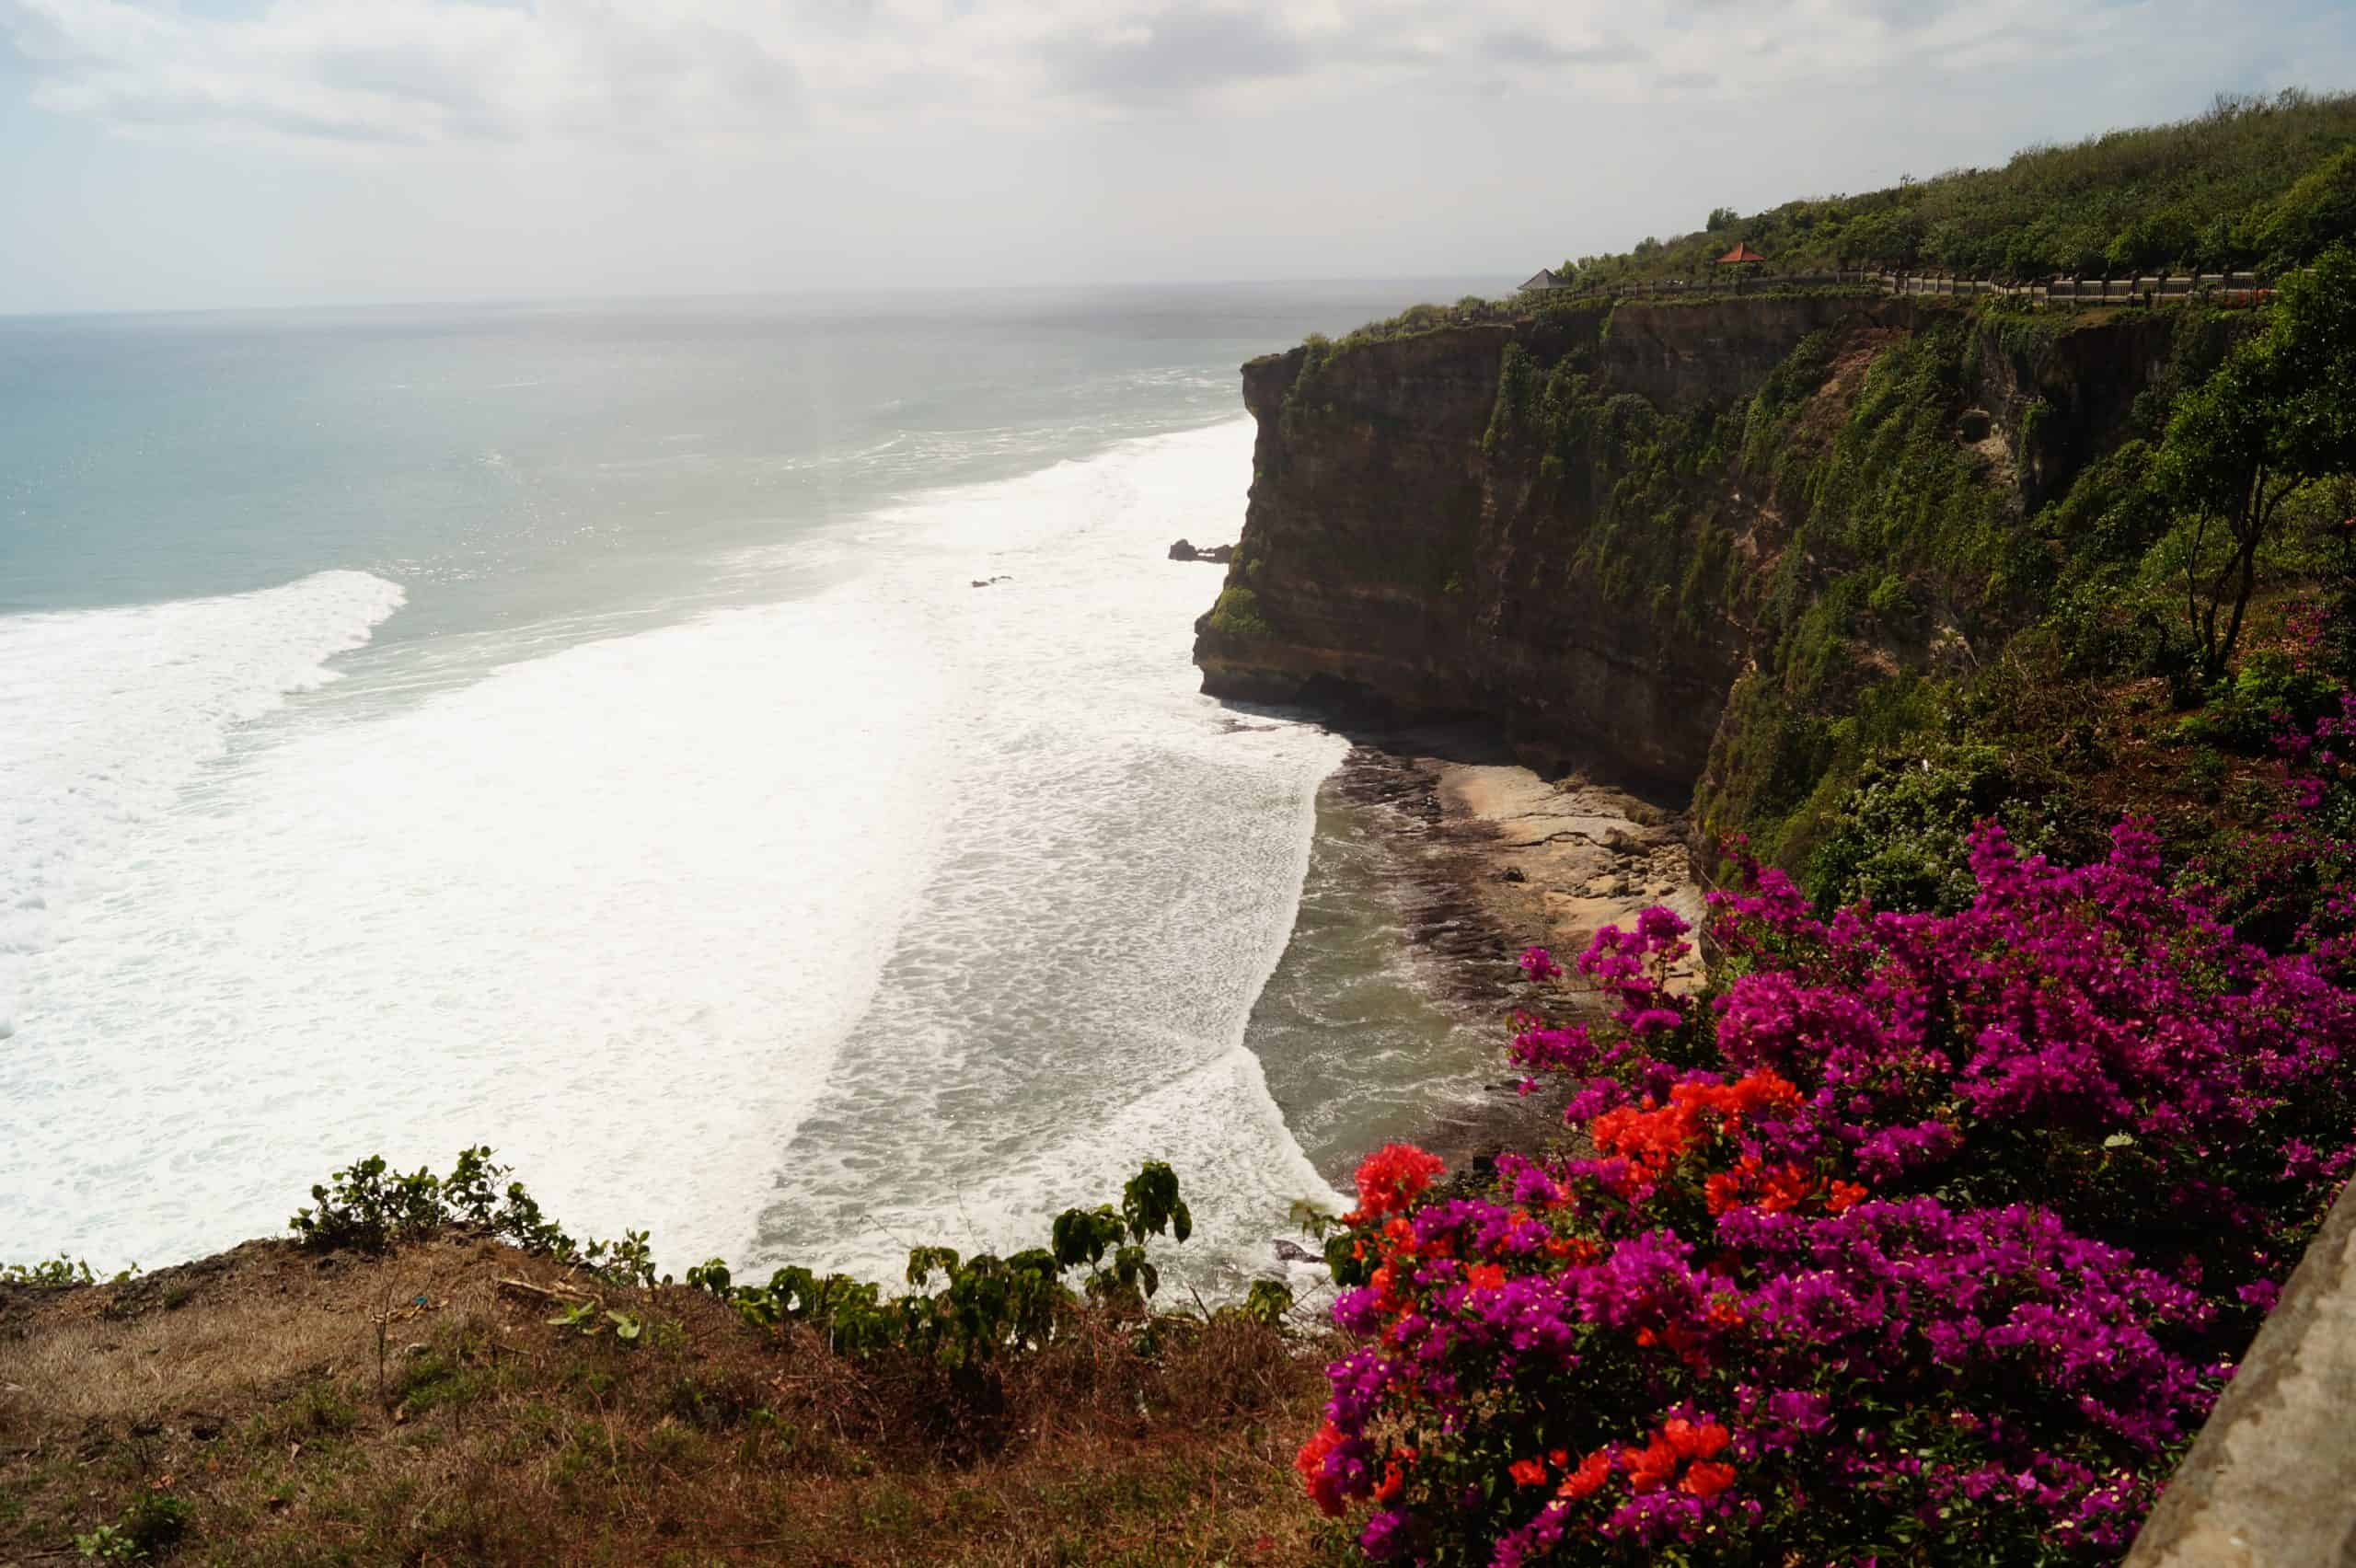 Bali Templo Uluwatu Vistas al mar scaled - The Uluwatu Temple and the surrounding beaches, travel guide